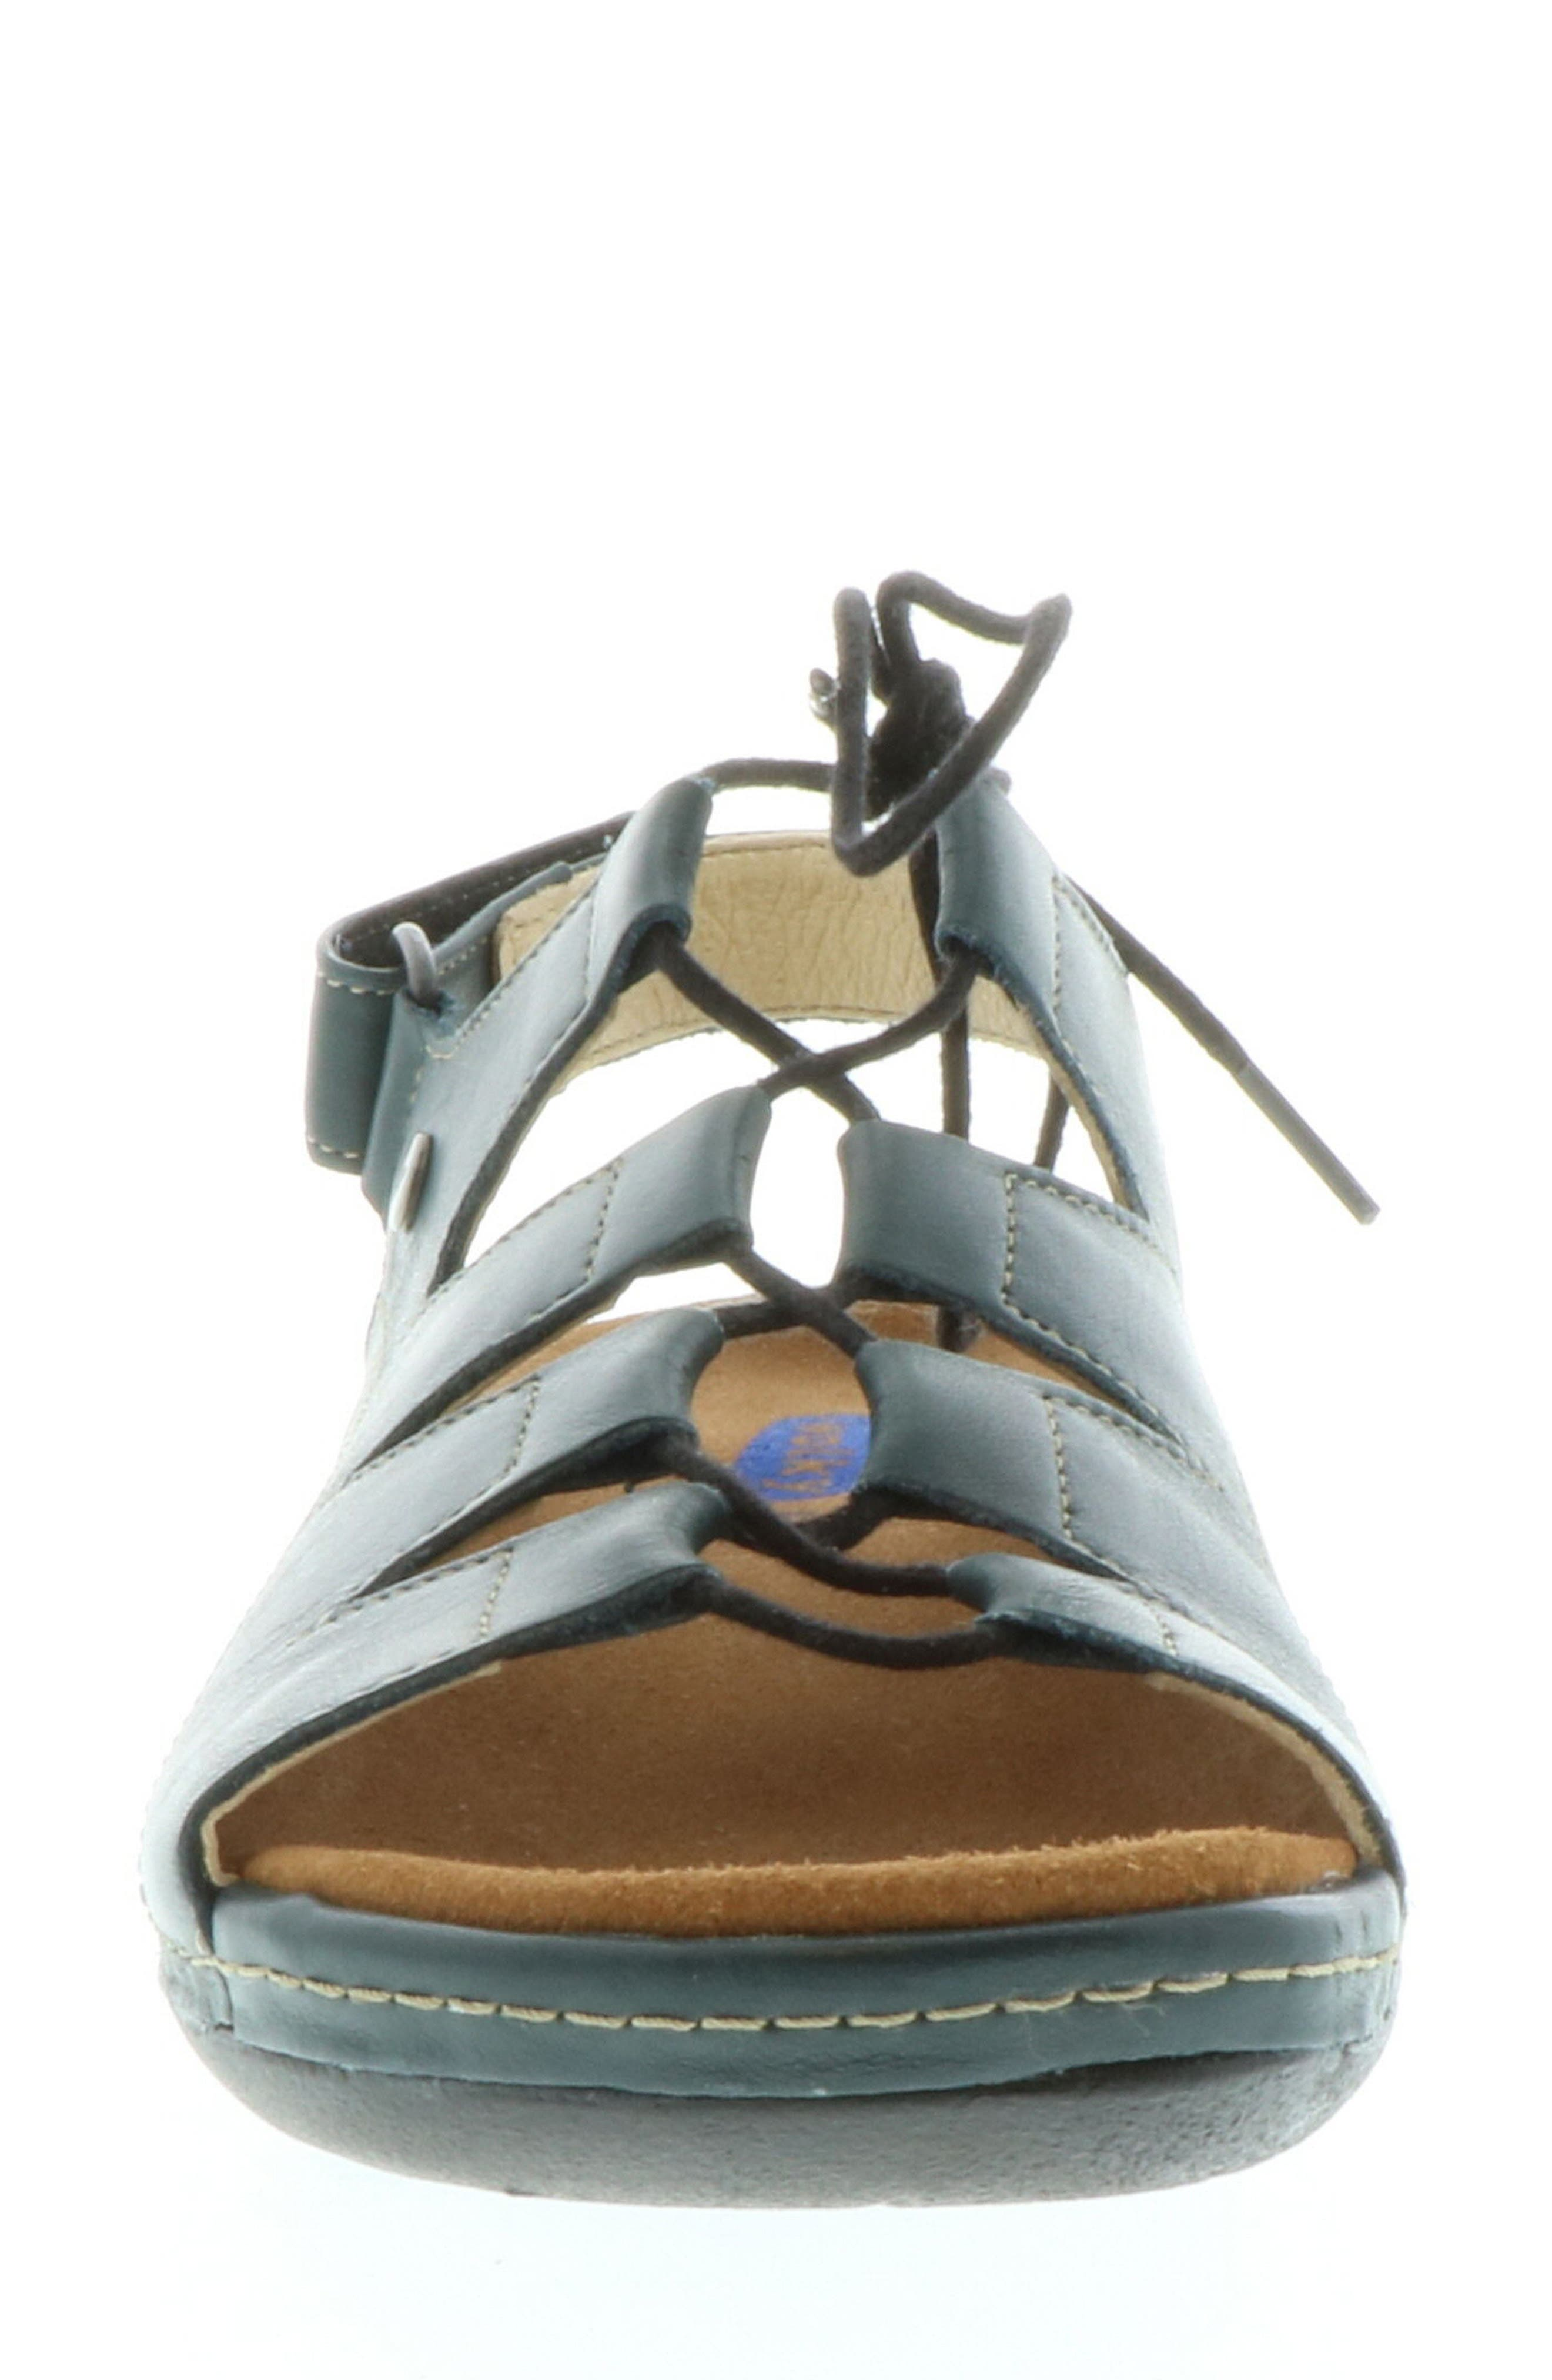 Kite Lace-Up Sandal,                             Alternate thumbnail 3, color,                             Navy Leather